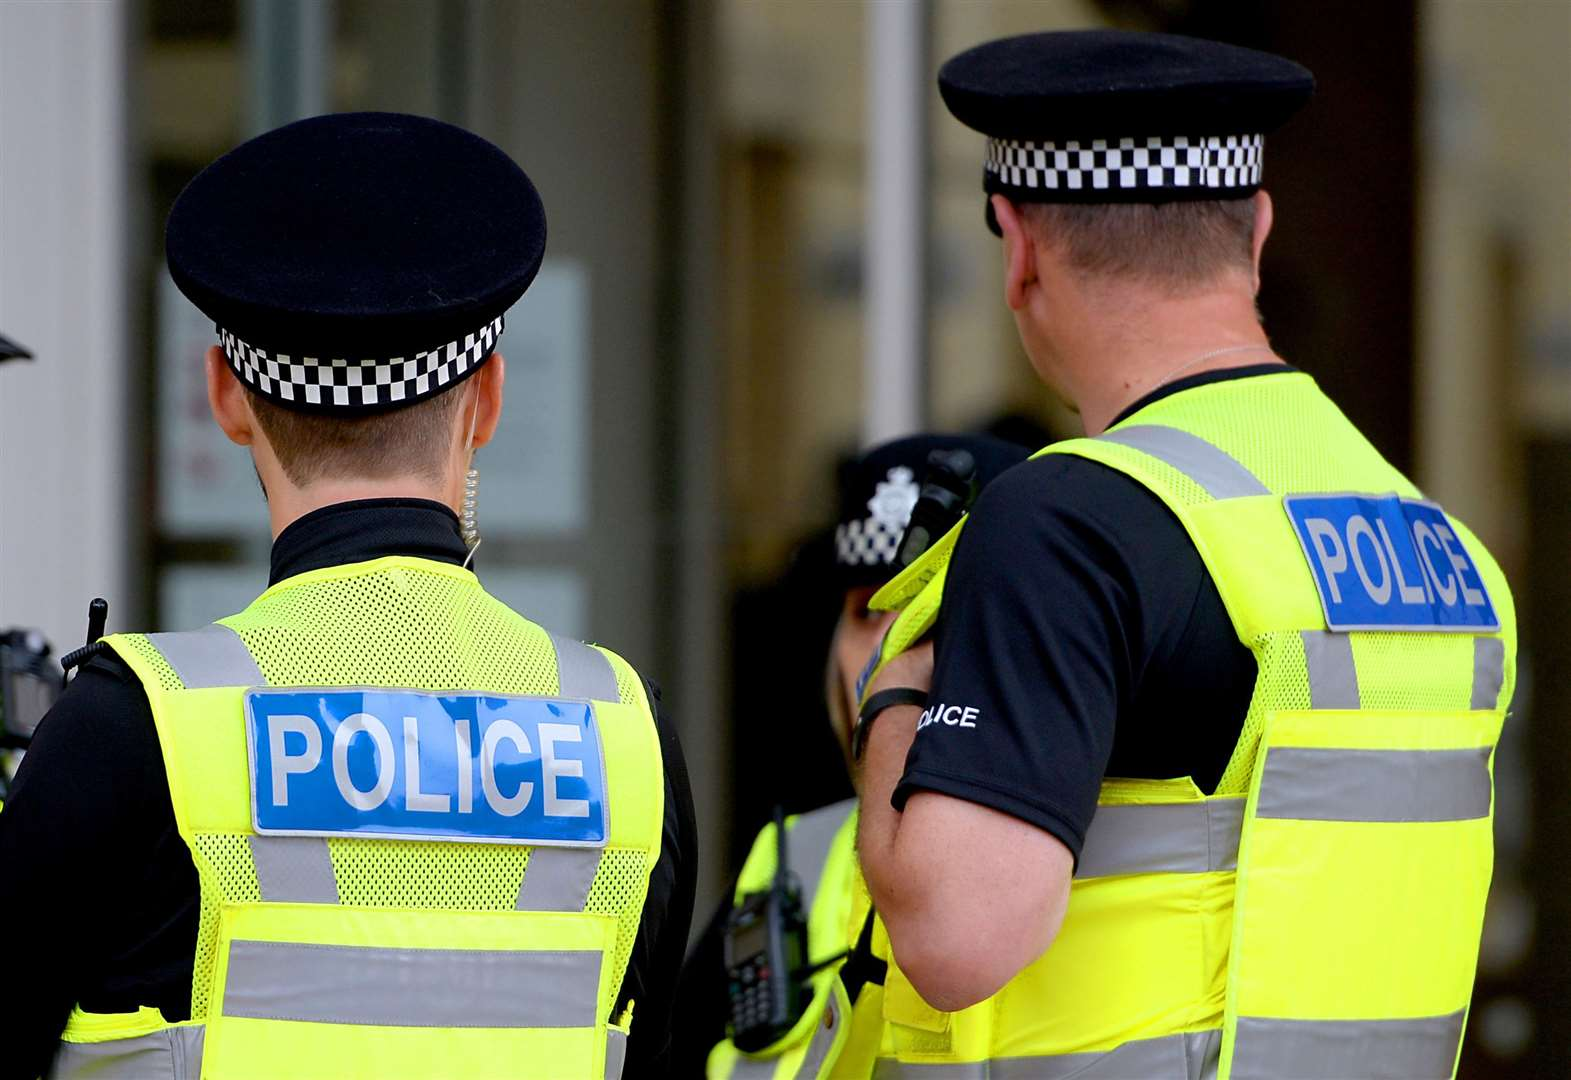 Police continuing operation to tackle anti-social youths in Newmarket